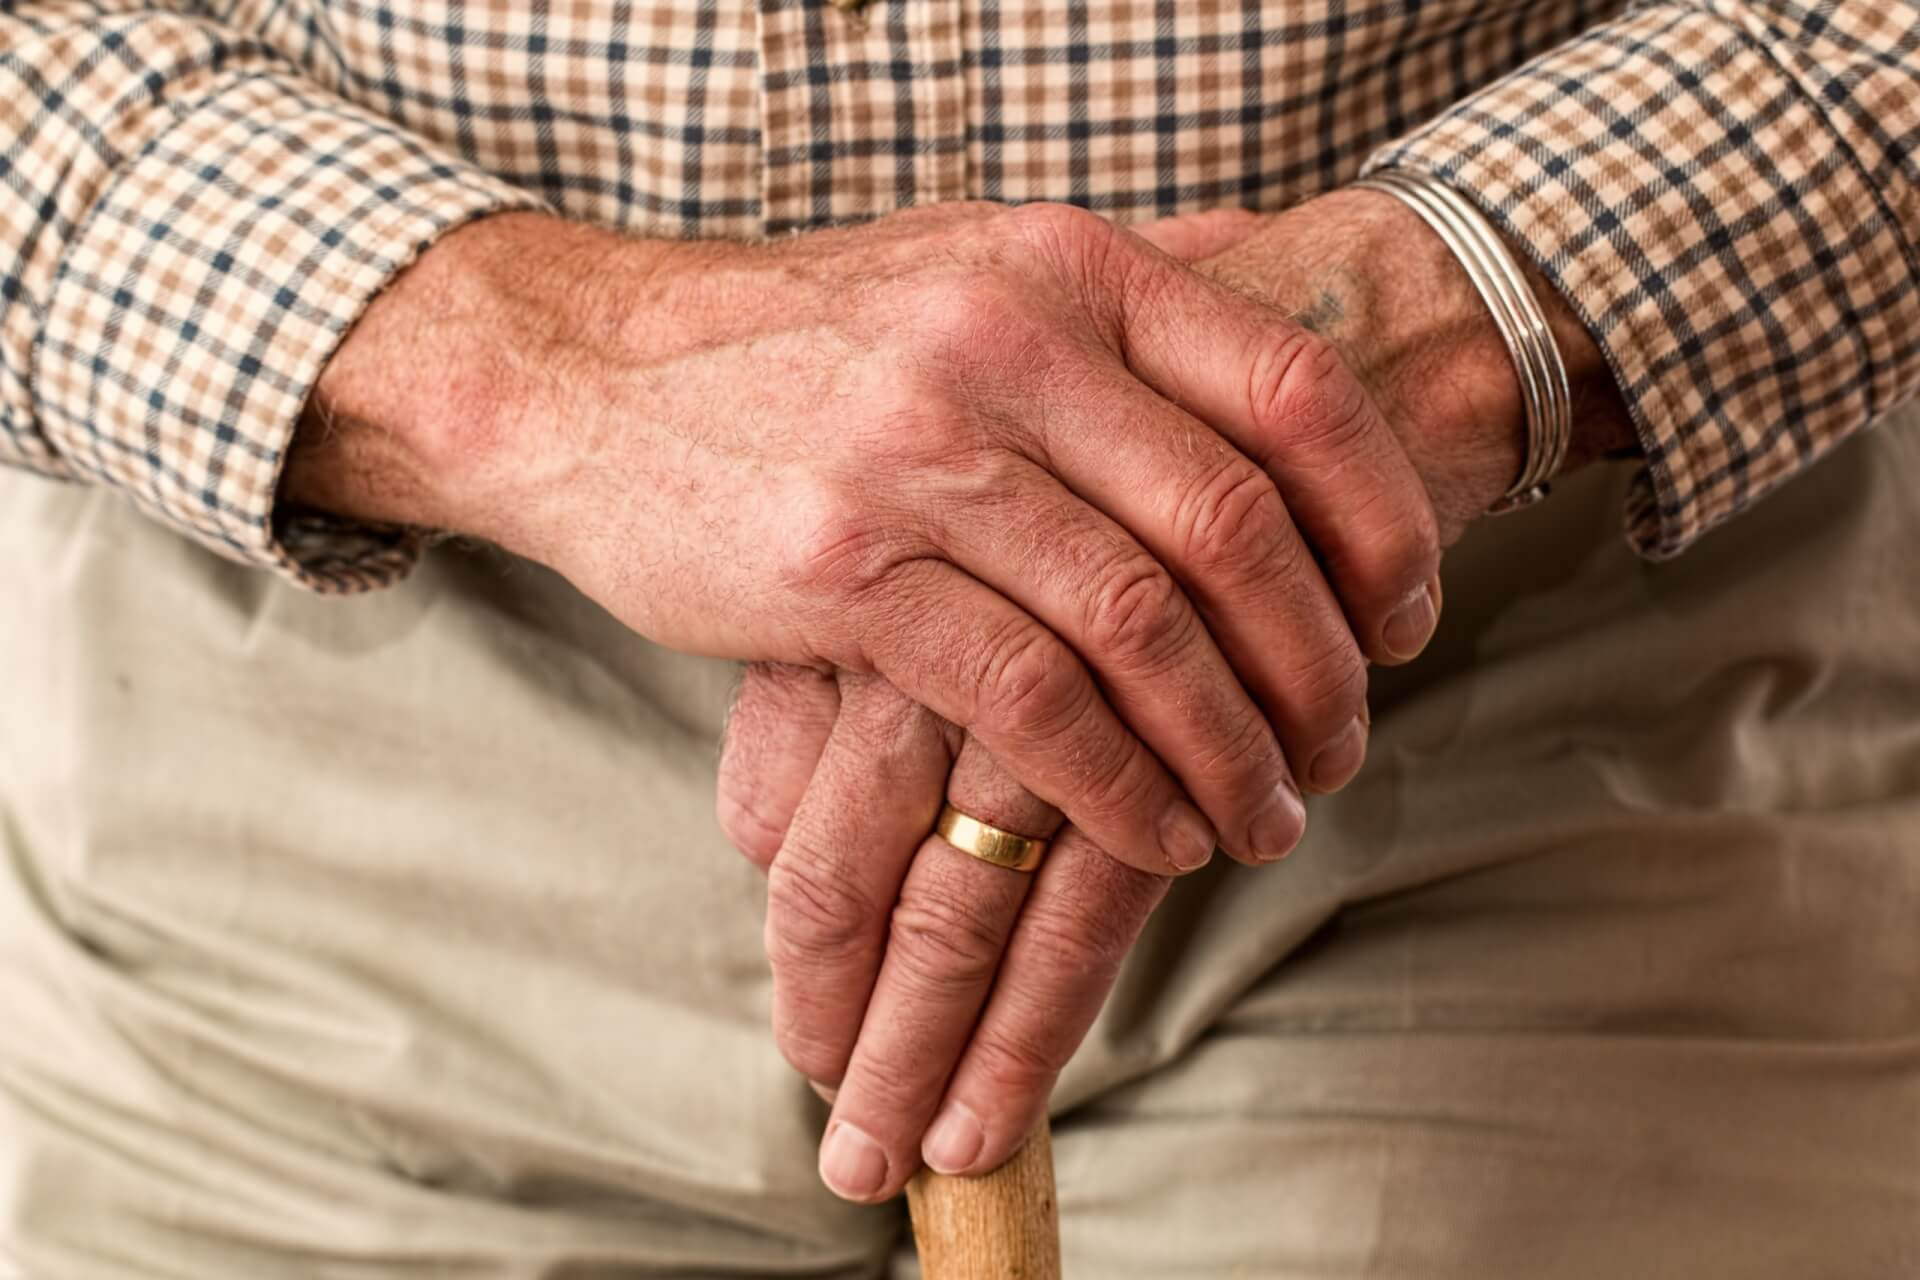 The Dirty Secret of Assisted Living